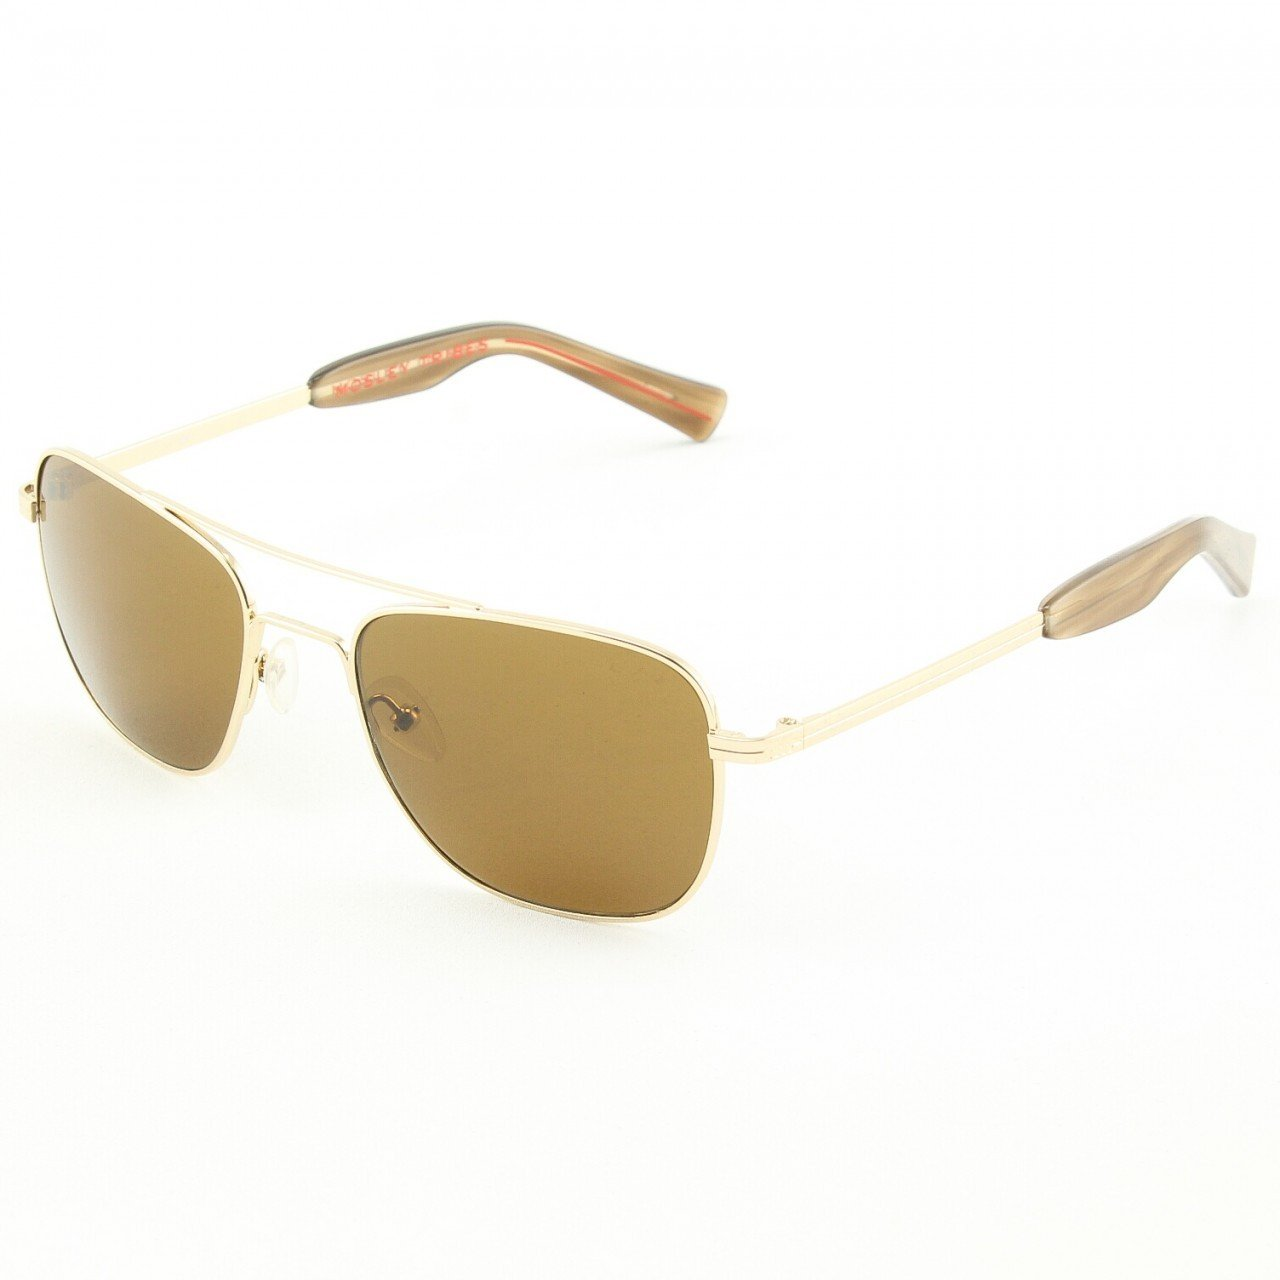 Mosley Tribes 2033S Cayton Sunglasses Col. 503553 Gold with Brown Lenses